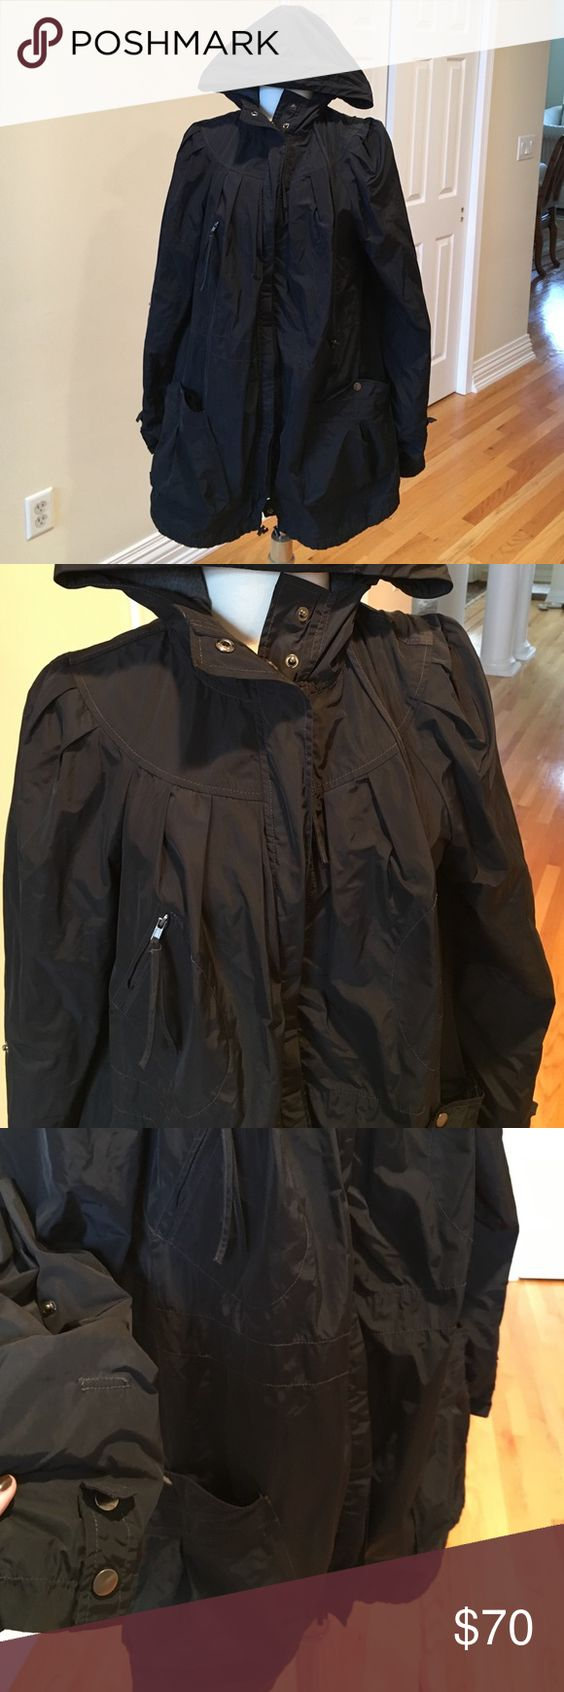 Free People jacket ⚫️Brand new condition. Nylon jacket great for the rain or a chilly day. Hooded. Lots of pockets. Oversized look. Free People Jackets & Coats